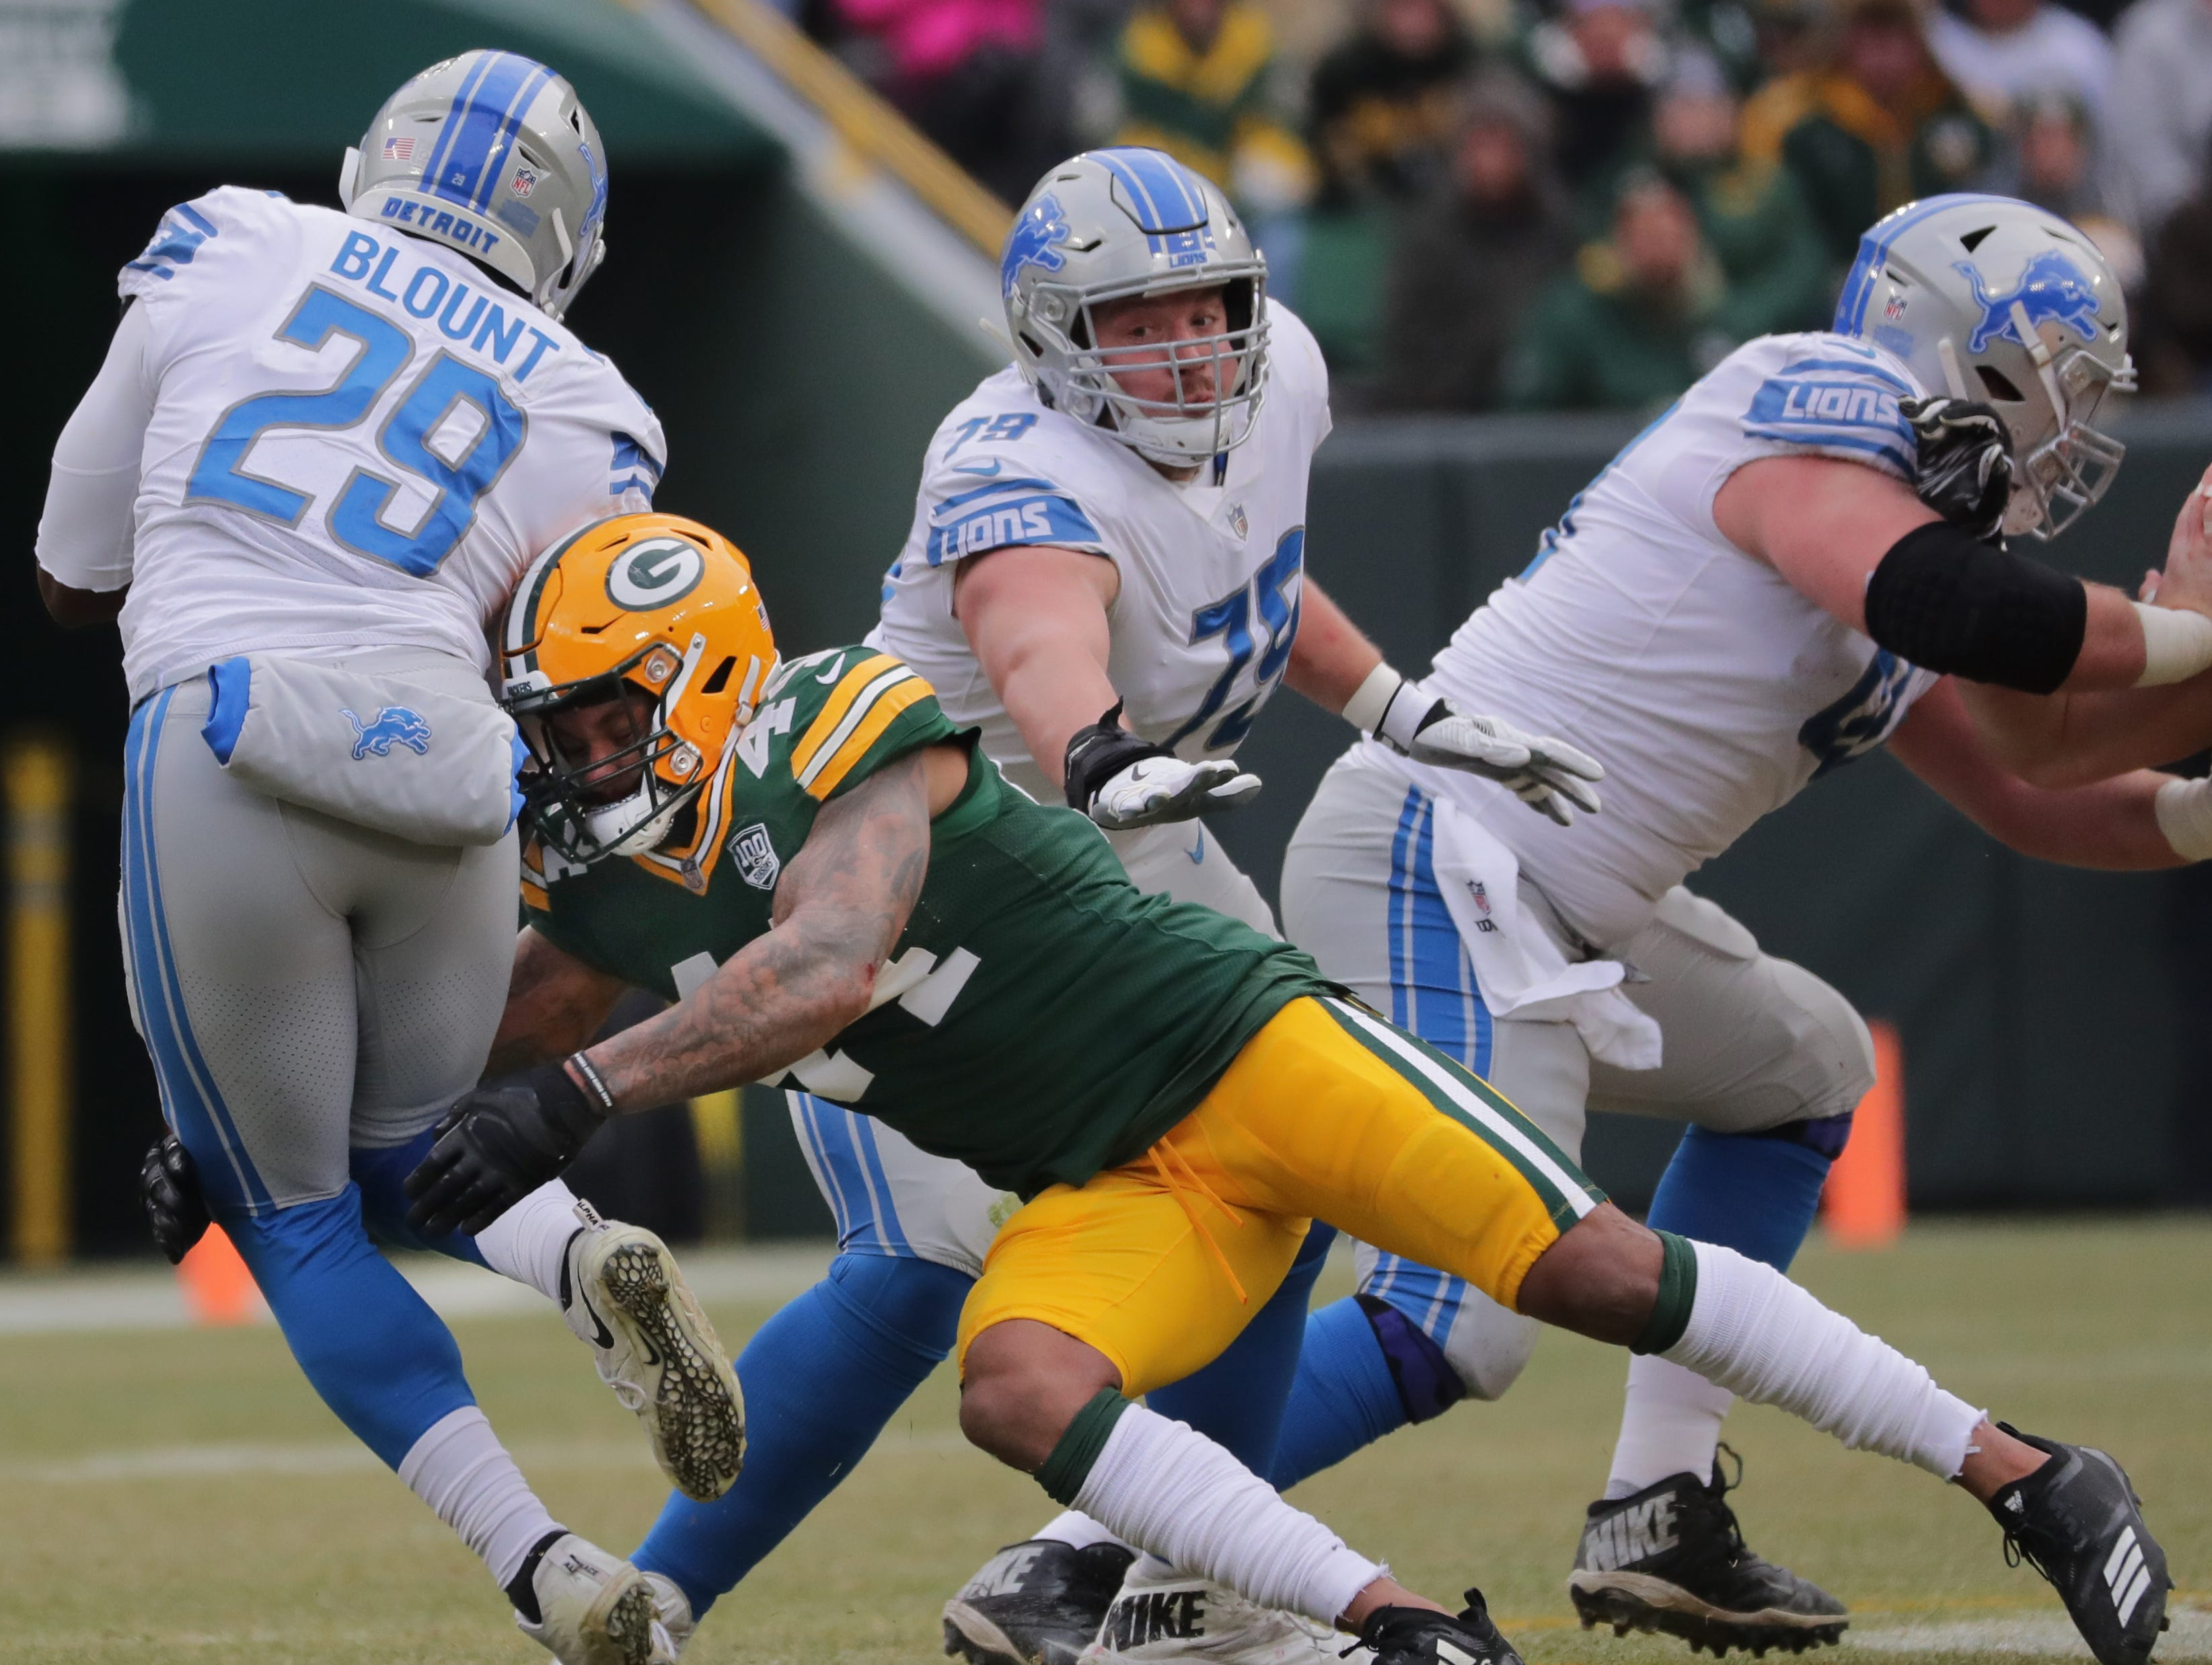 Green Bay Packers inside linebacker Antonio Morrison (44) tackles Detroit Lions running back LeGarrette Blount (29) for a loss during the second quarter of their game Sunday, December 30, 2018 at Lambeau Field in Green Bay, Wis. The Detroit Lions beat the Green Bay Packers 31-0.  MARK HOFFMAN/MILWAUKEE JOURNAL SENTINEL